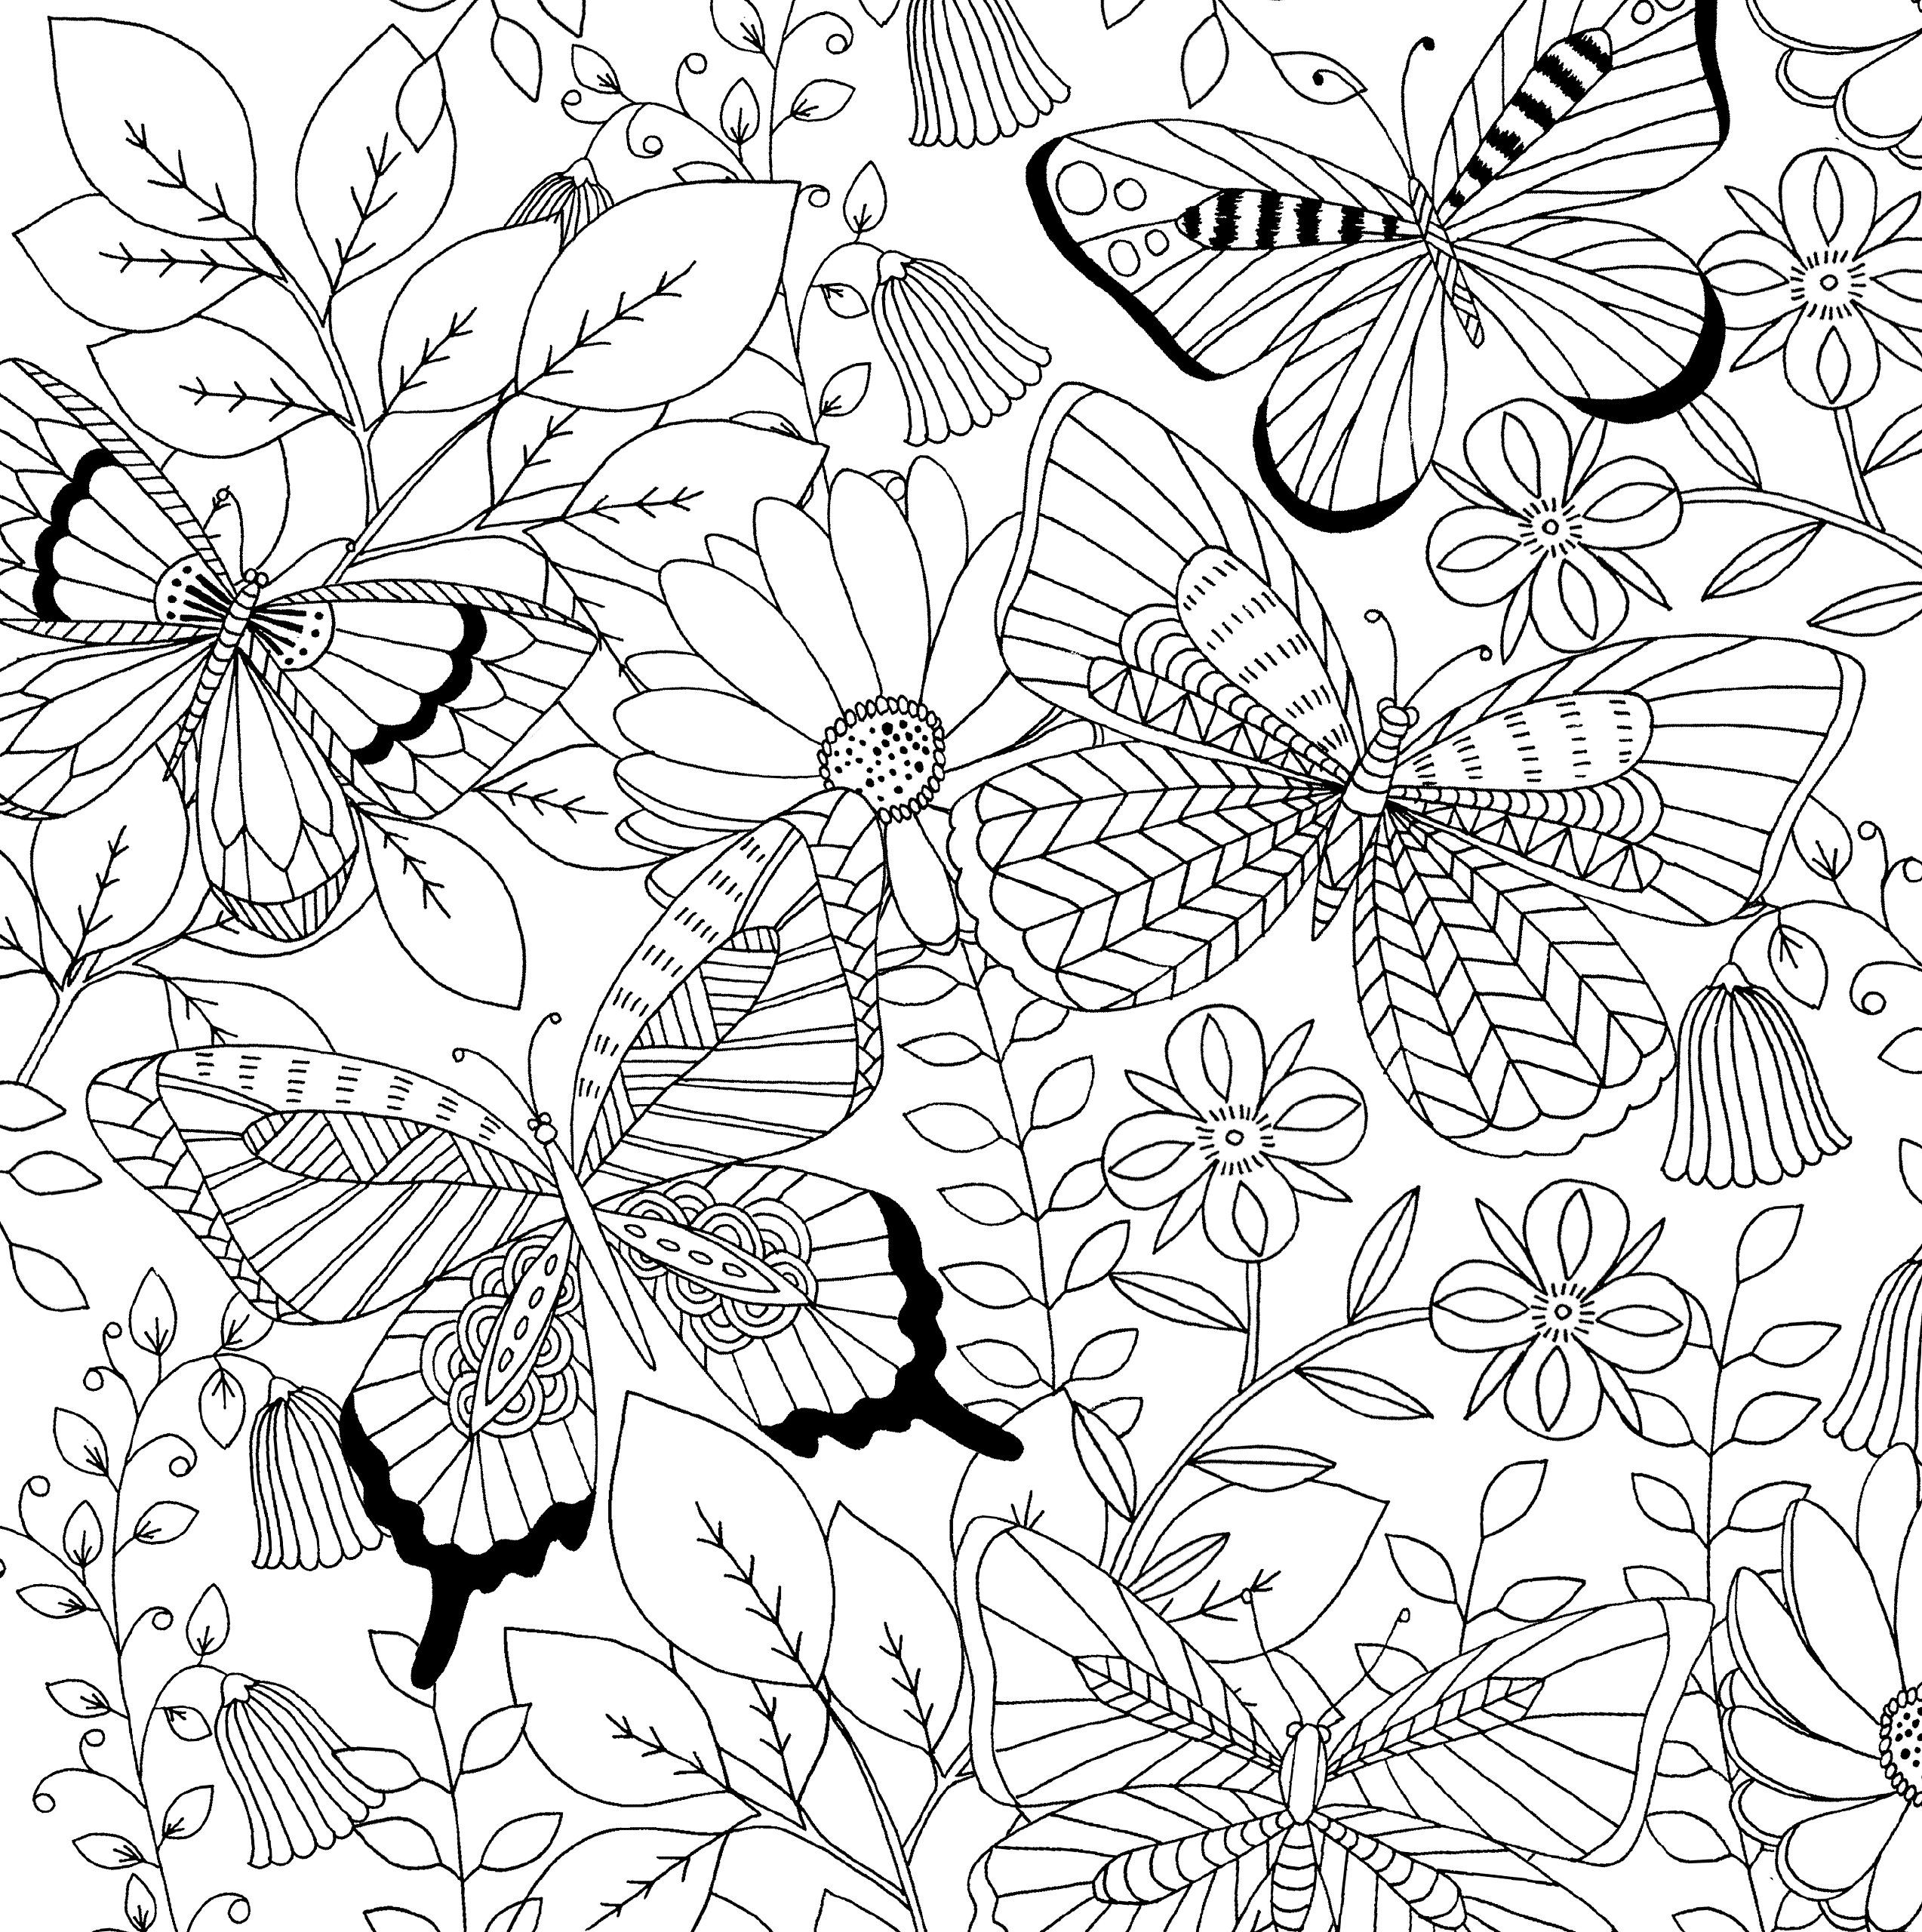 Follow Your Dreams Adult Coloring Book 31 Stress Relieving Designs Artists